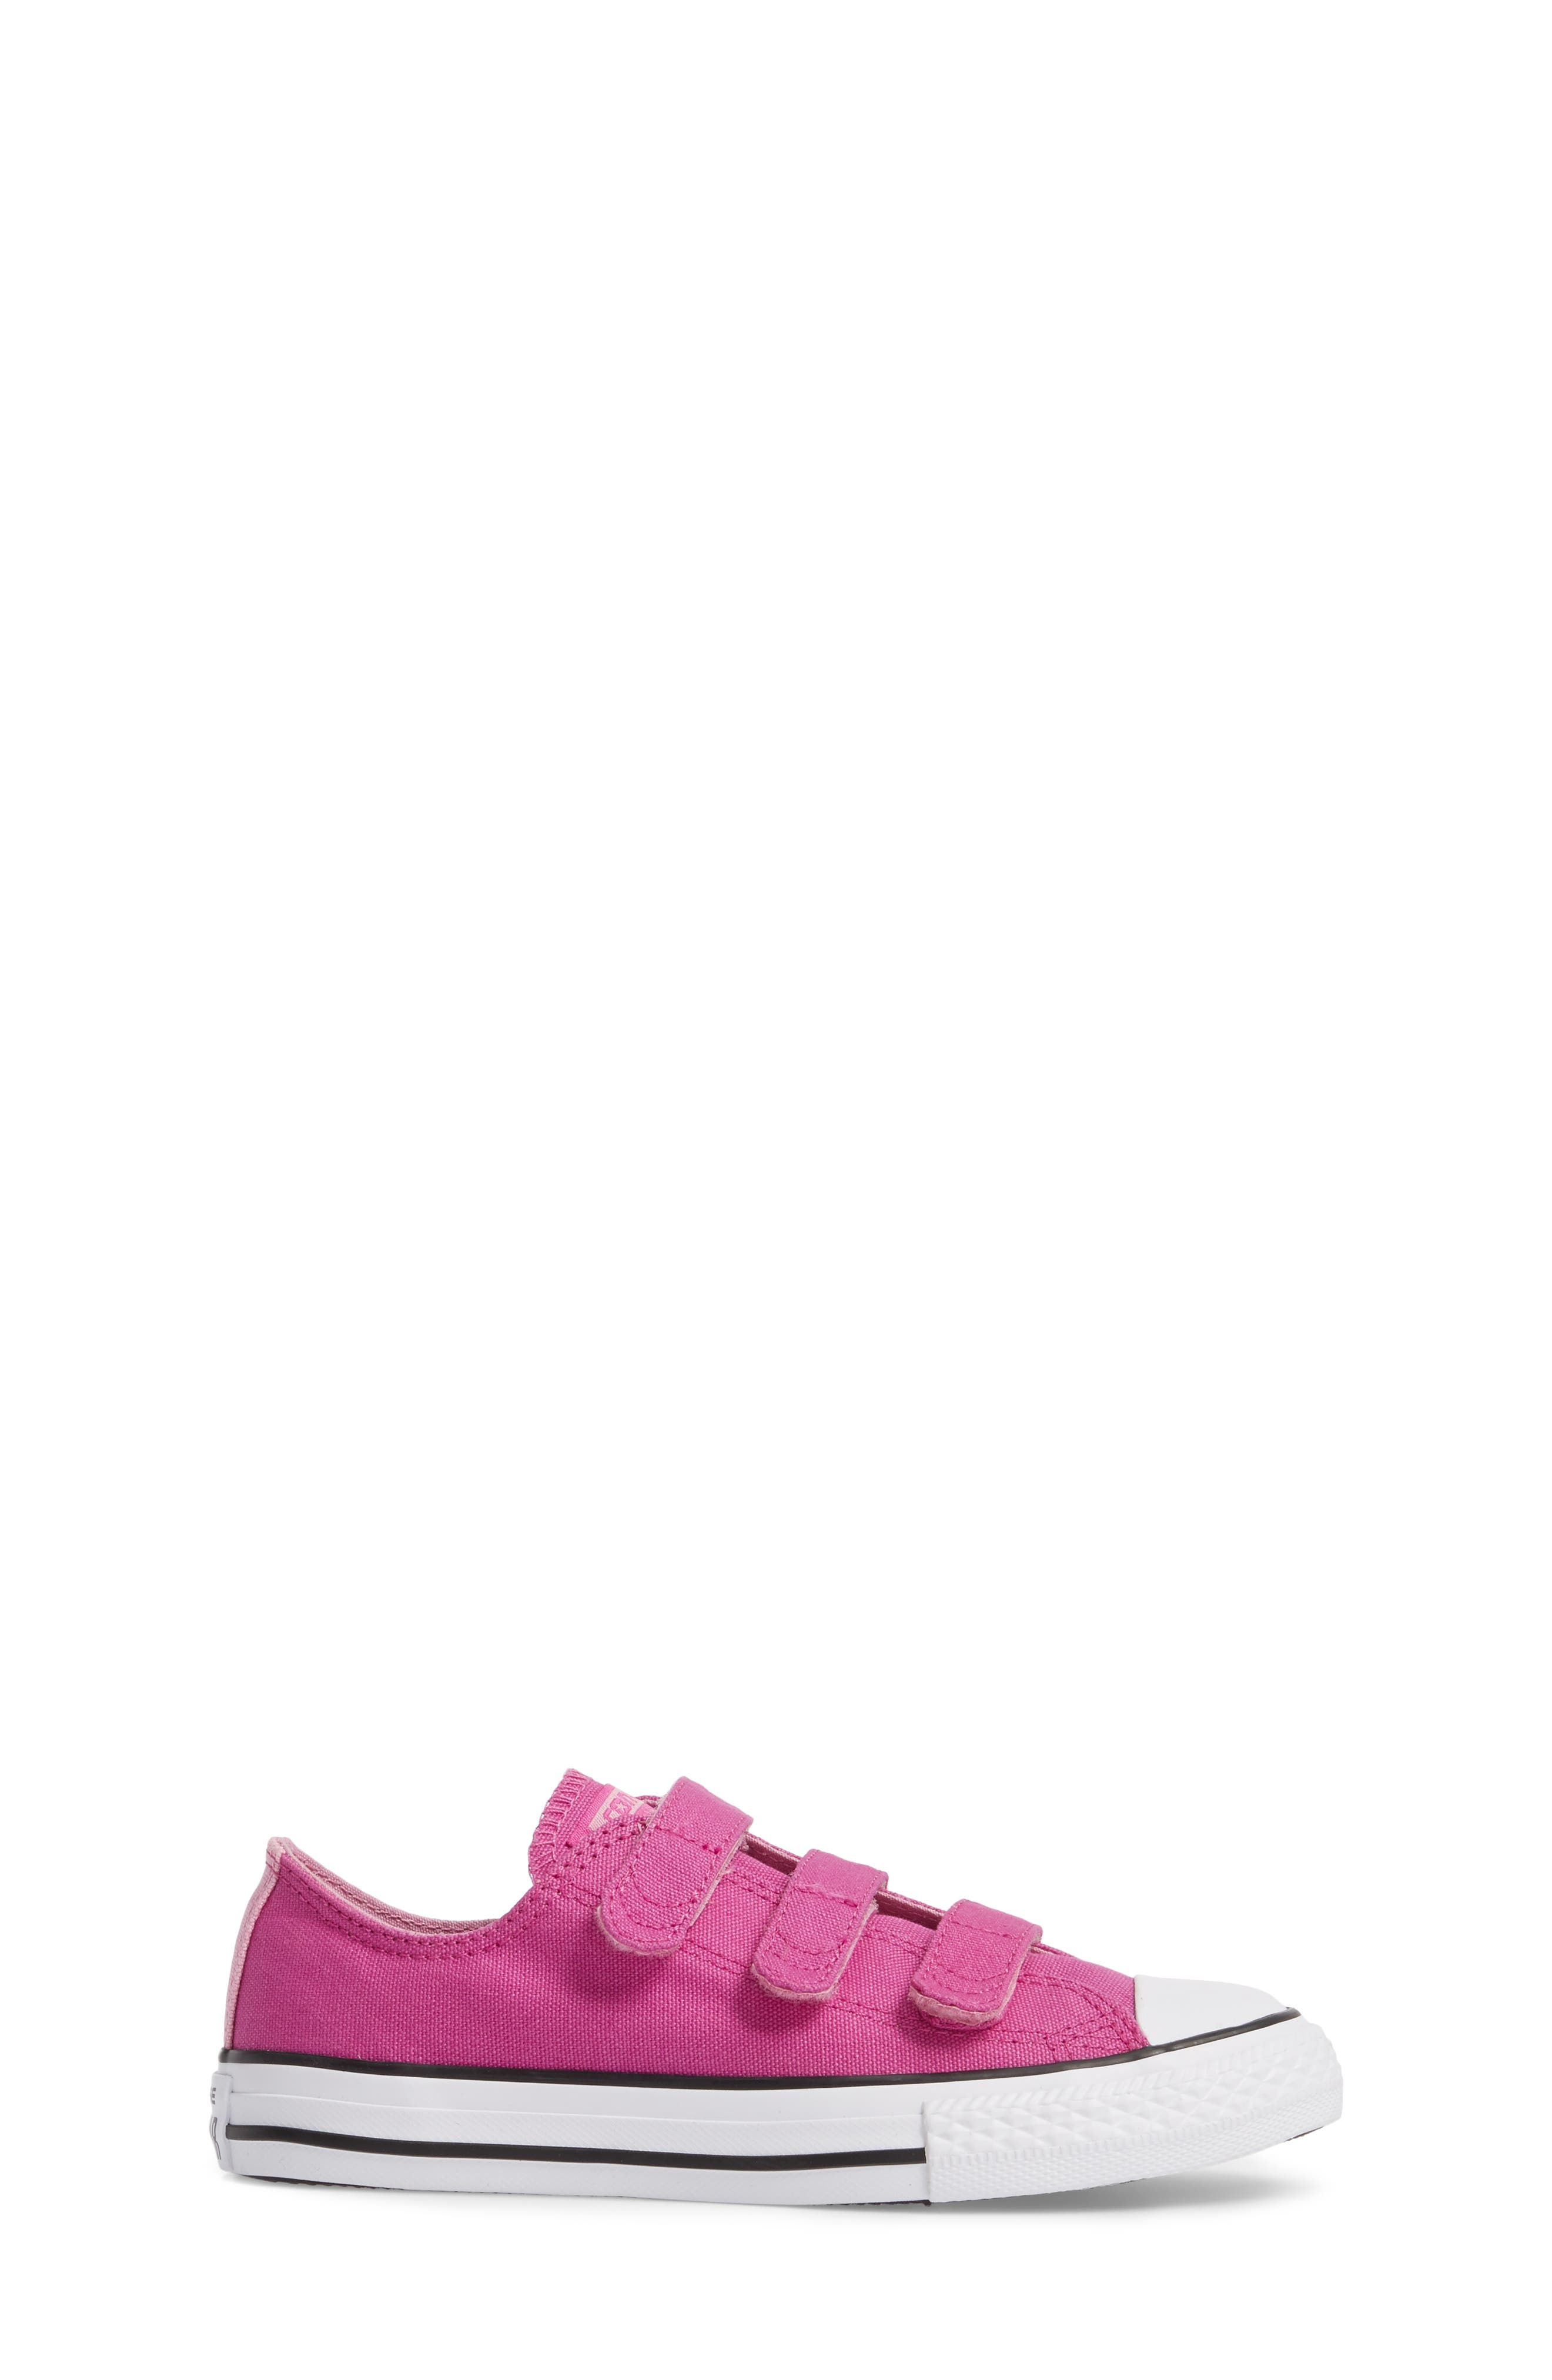 Chuck Taylor<sup>®</sup> All Star<sup>®</sup> 3V Low Top Sneaker,                             Alternate thumbnail 3, color,                             650